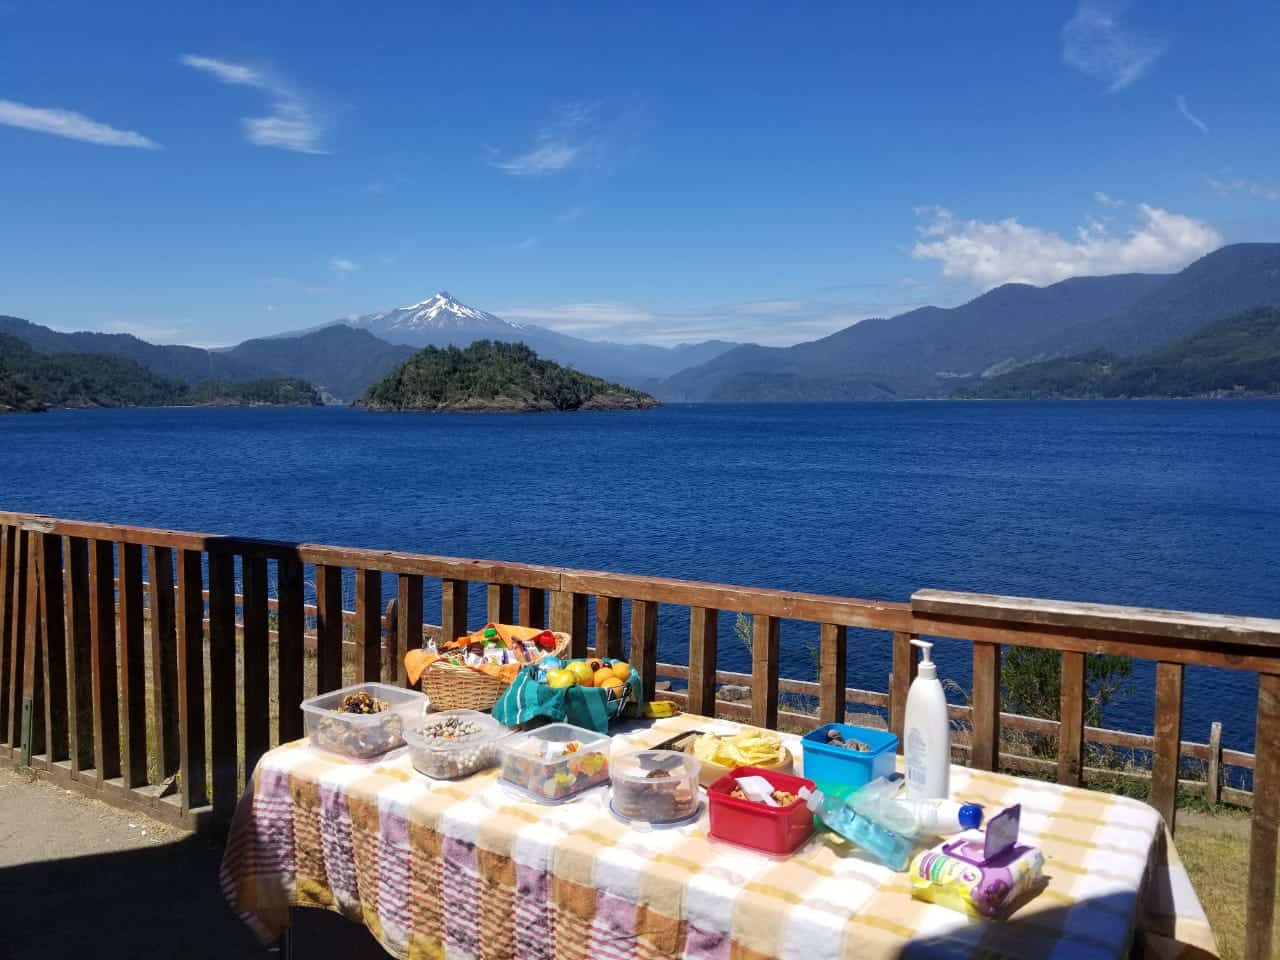 lake volcano table lunch picnic